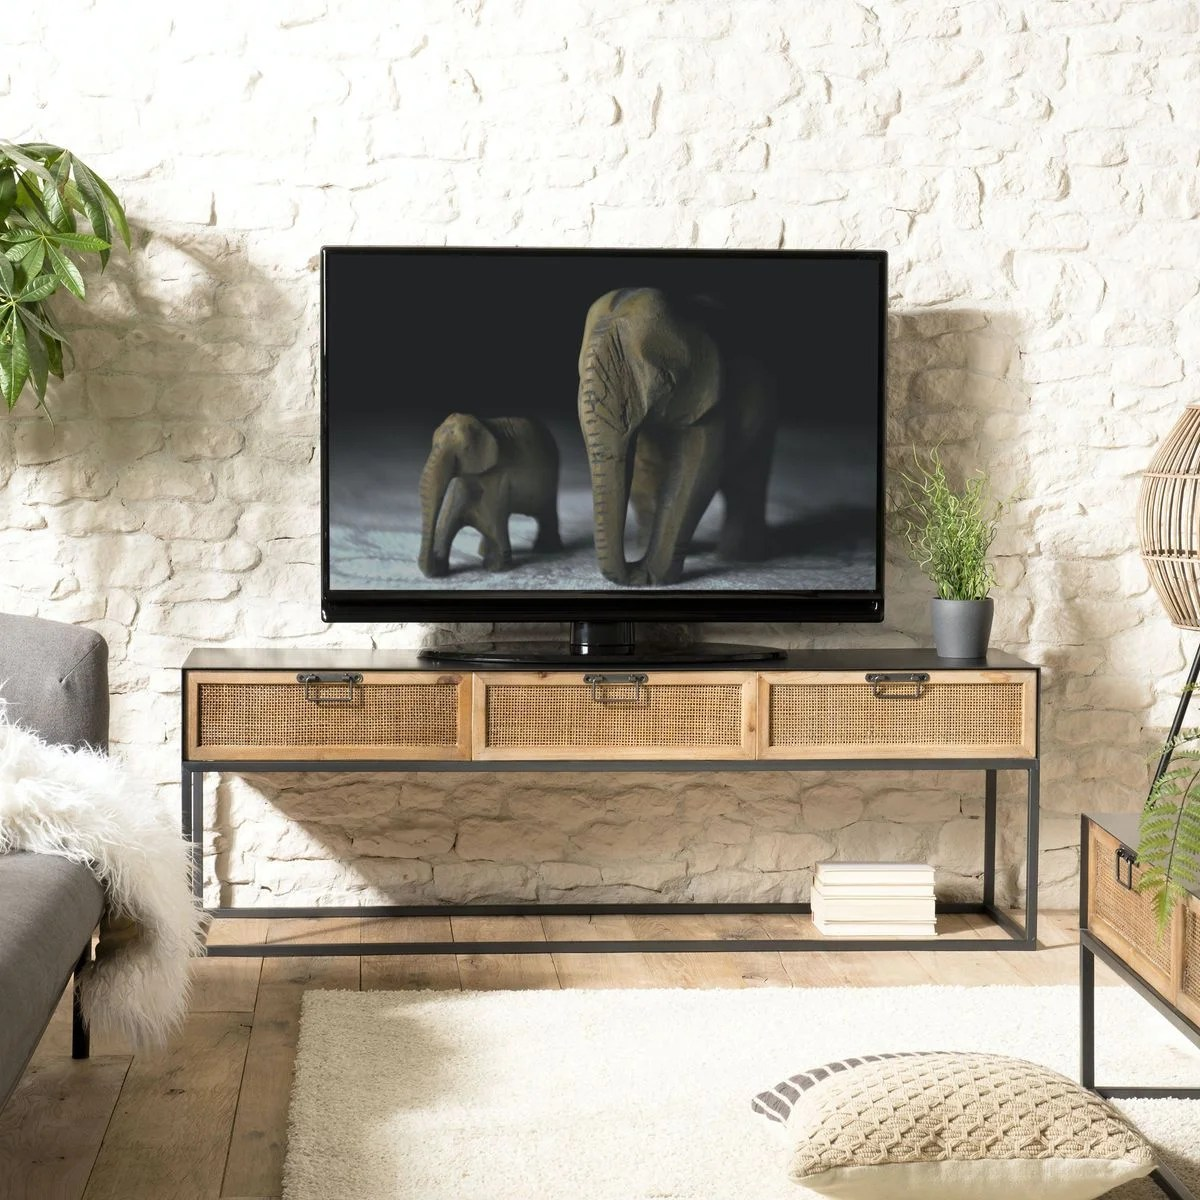 بدا pier import meuble tv